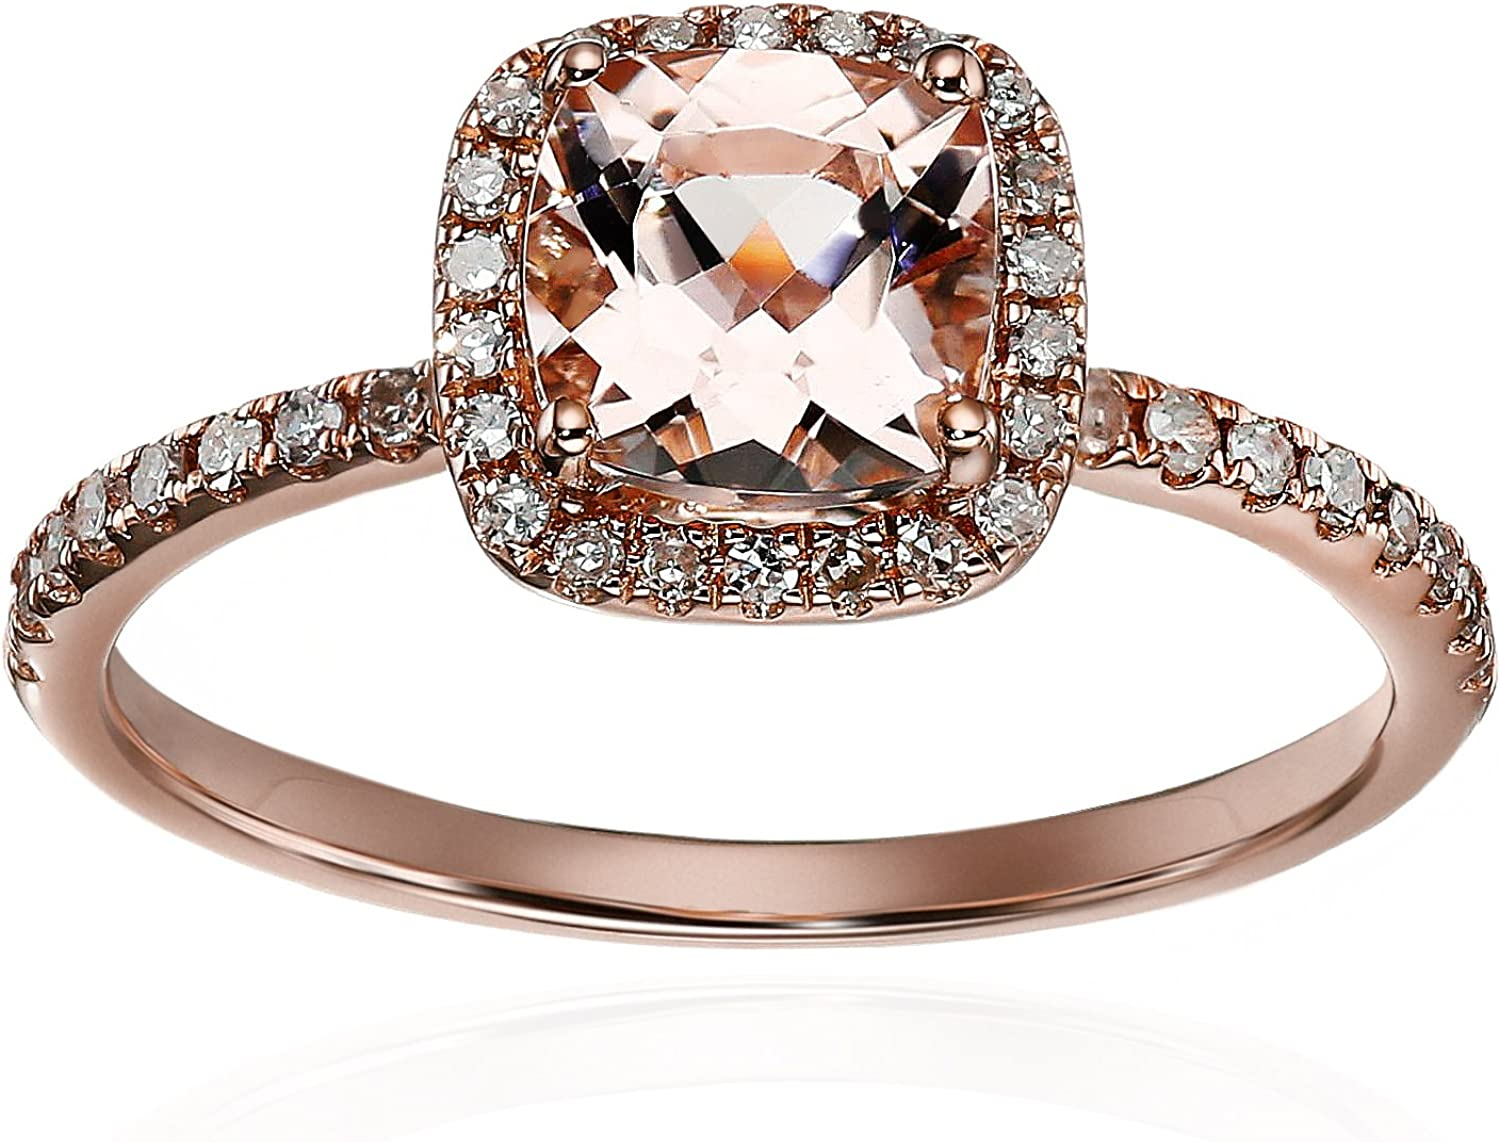 Size-6.25 G-H,I2-I3 1//20 cttw, Diamond Wedding Band in 10K Pink Gold